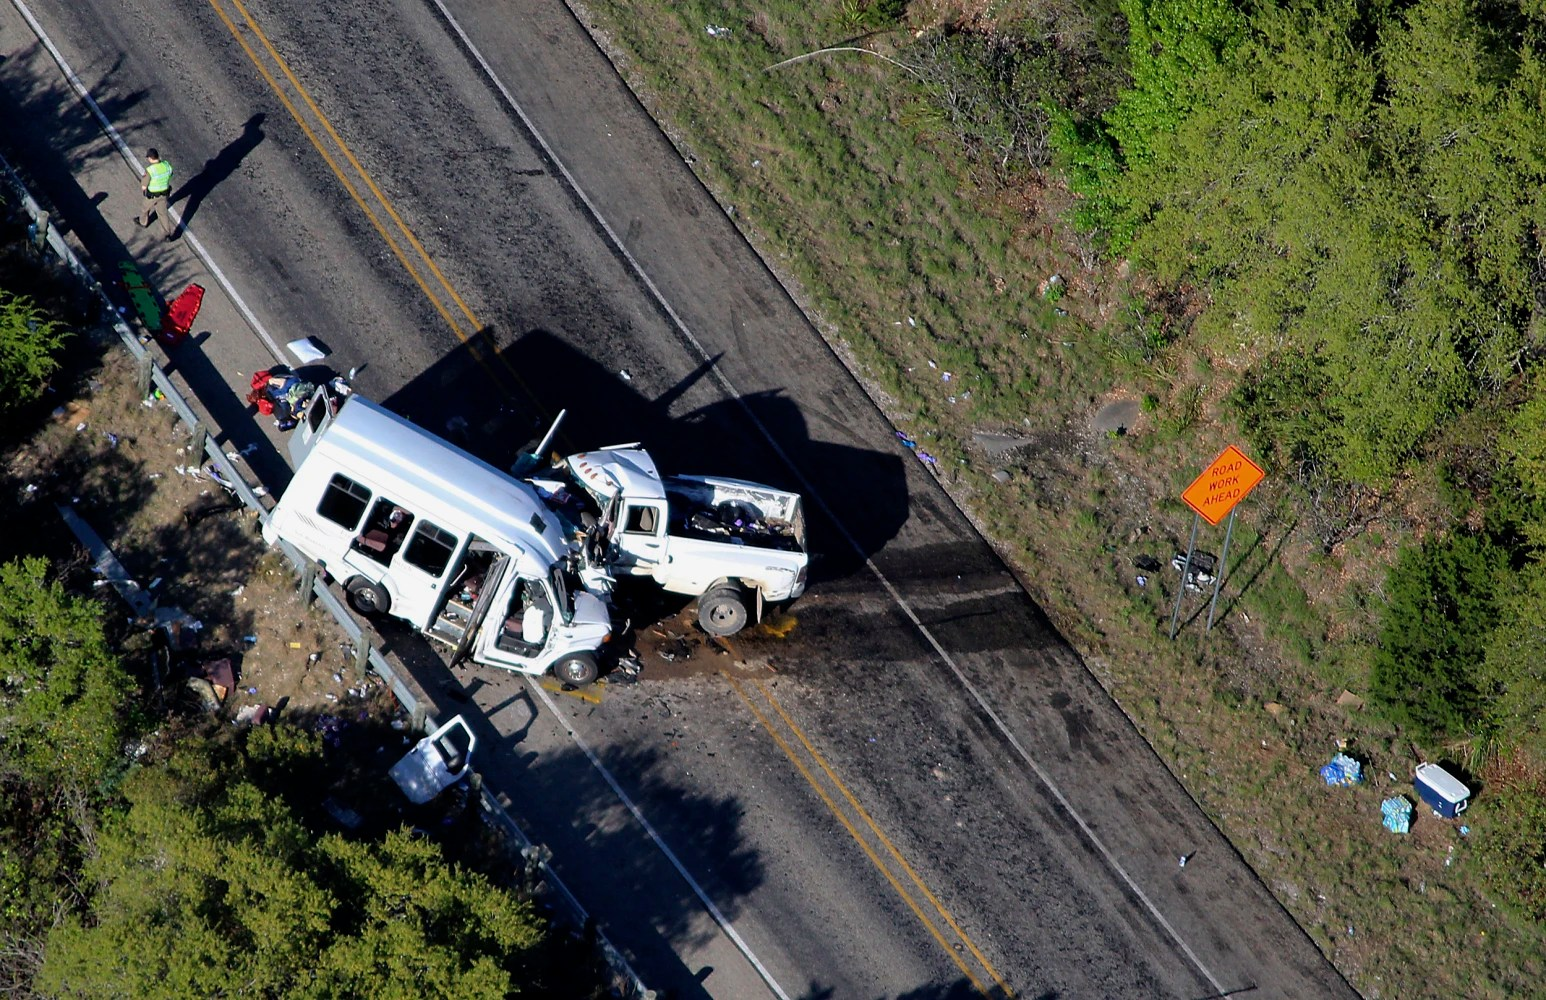 13 confirmed dead in head-on collision involving Texas church bus